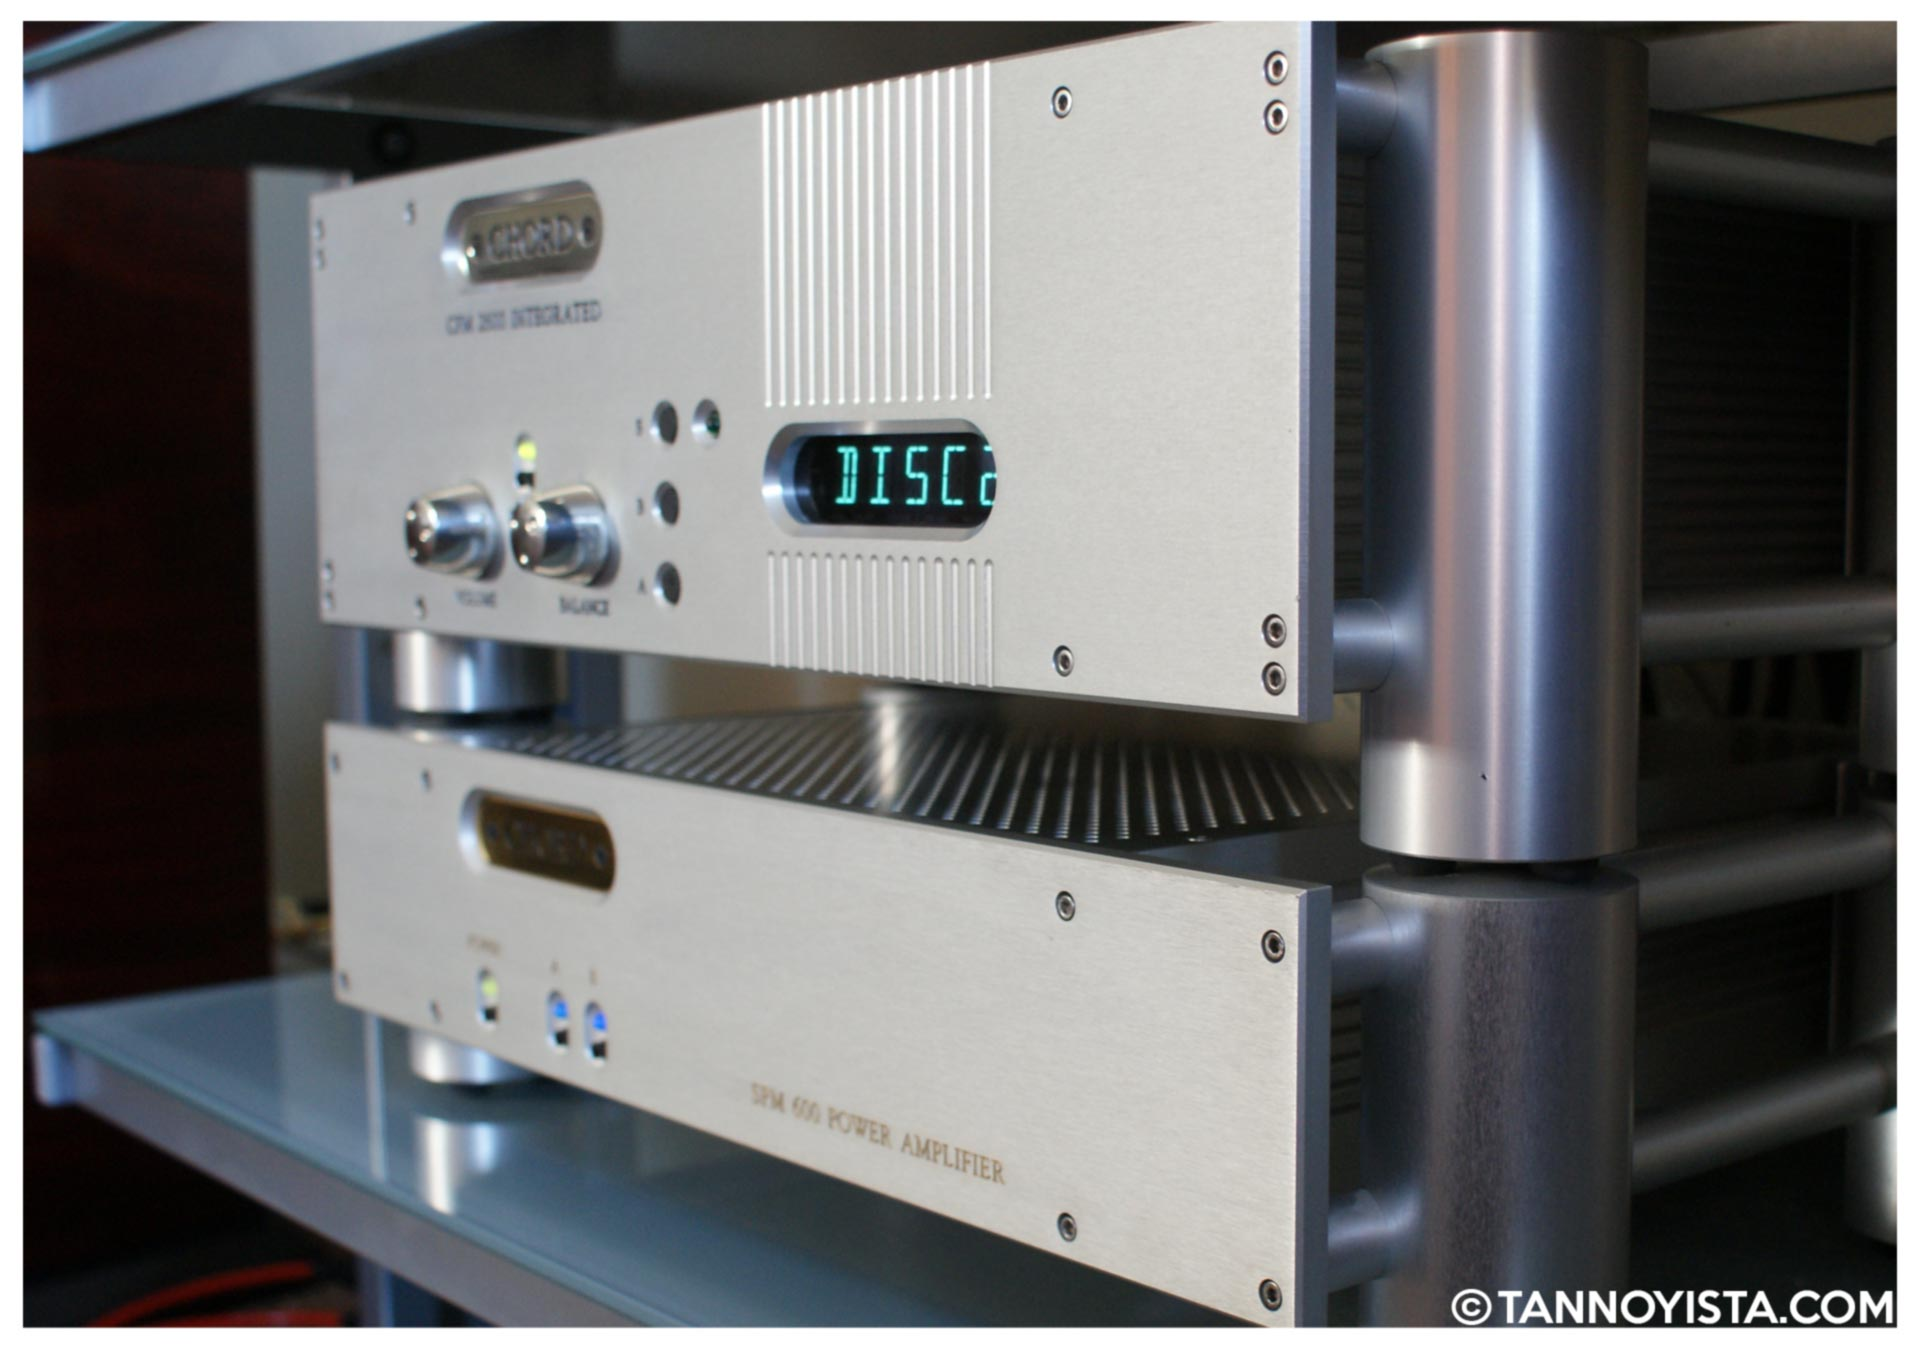 Chord amplifiers - SPM 2600 and SPM 600